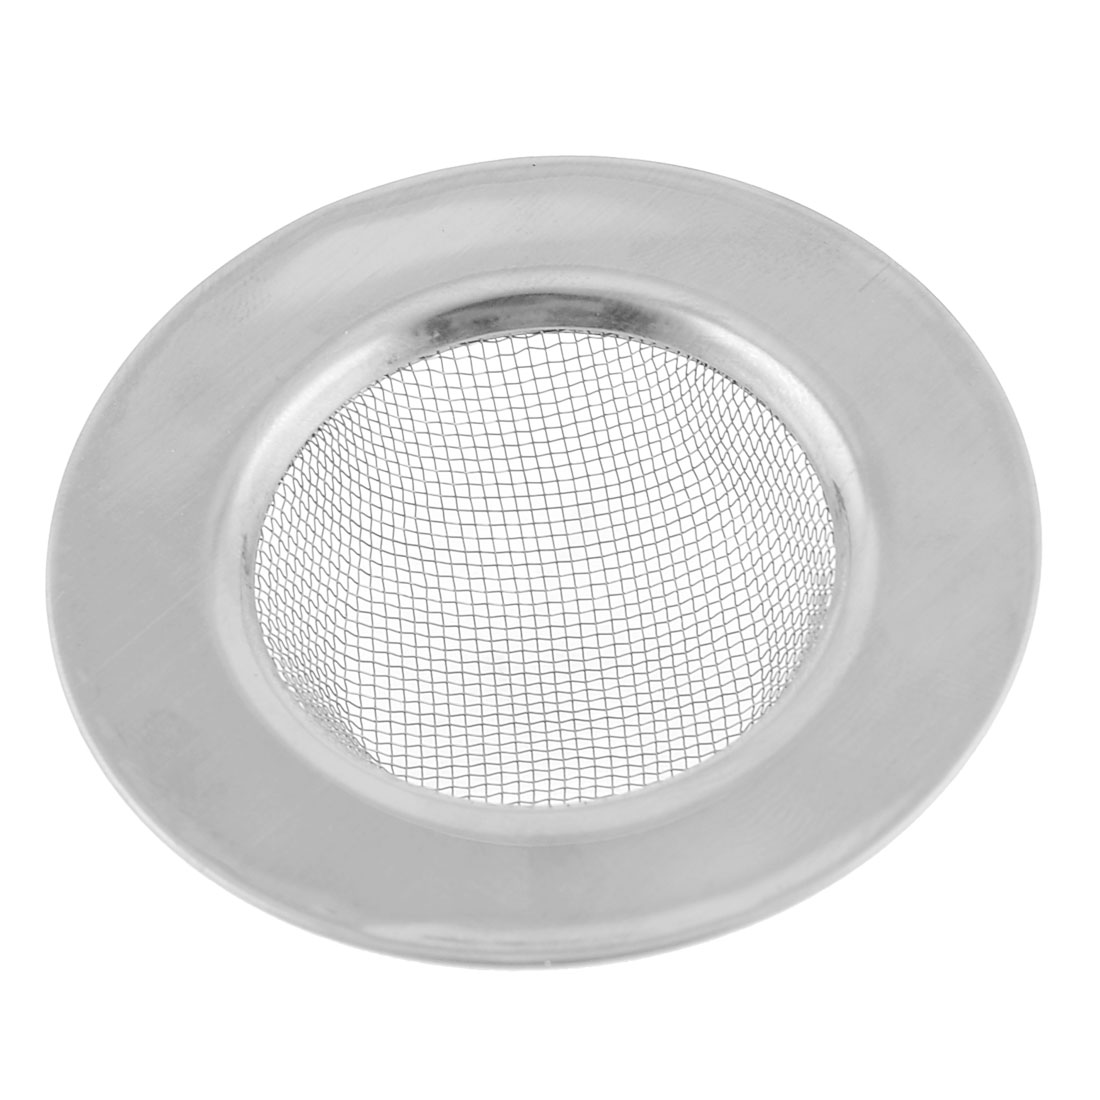 "2.4"" Diameter Mesh Hole Stainless Steel Round Sink Strainer for Bathroom"